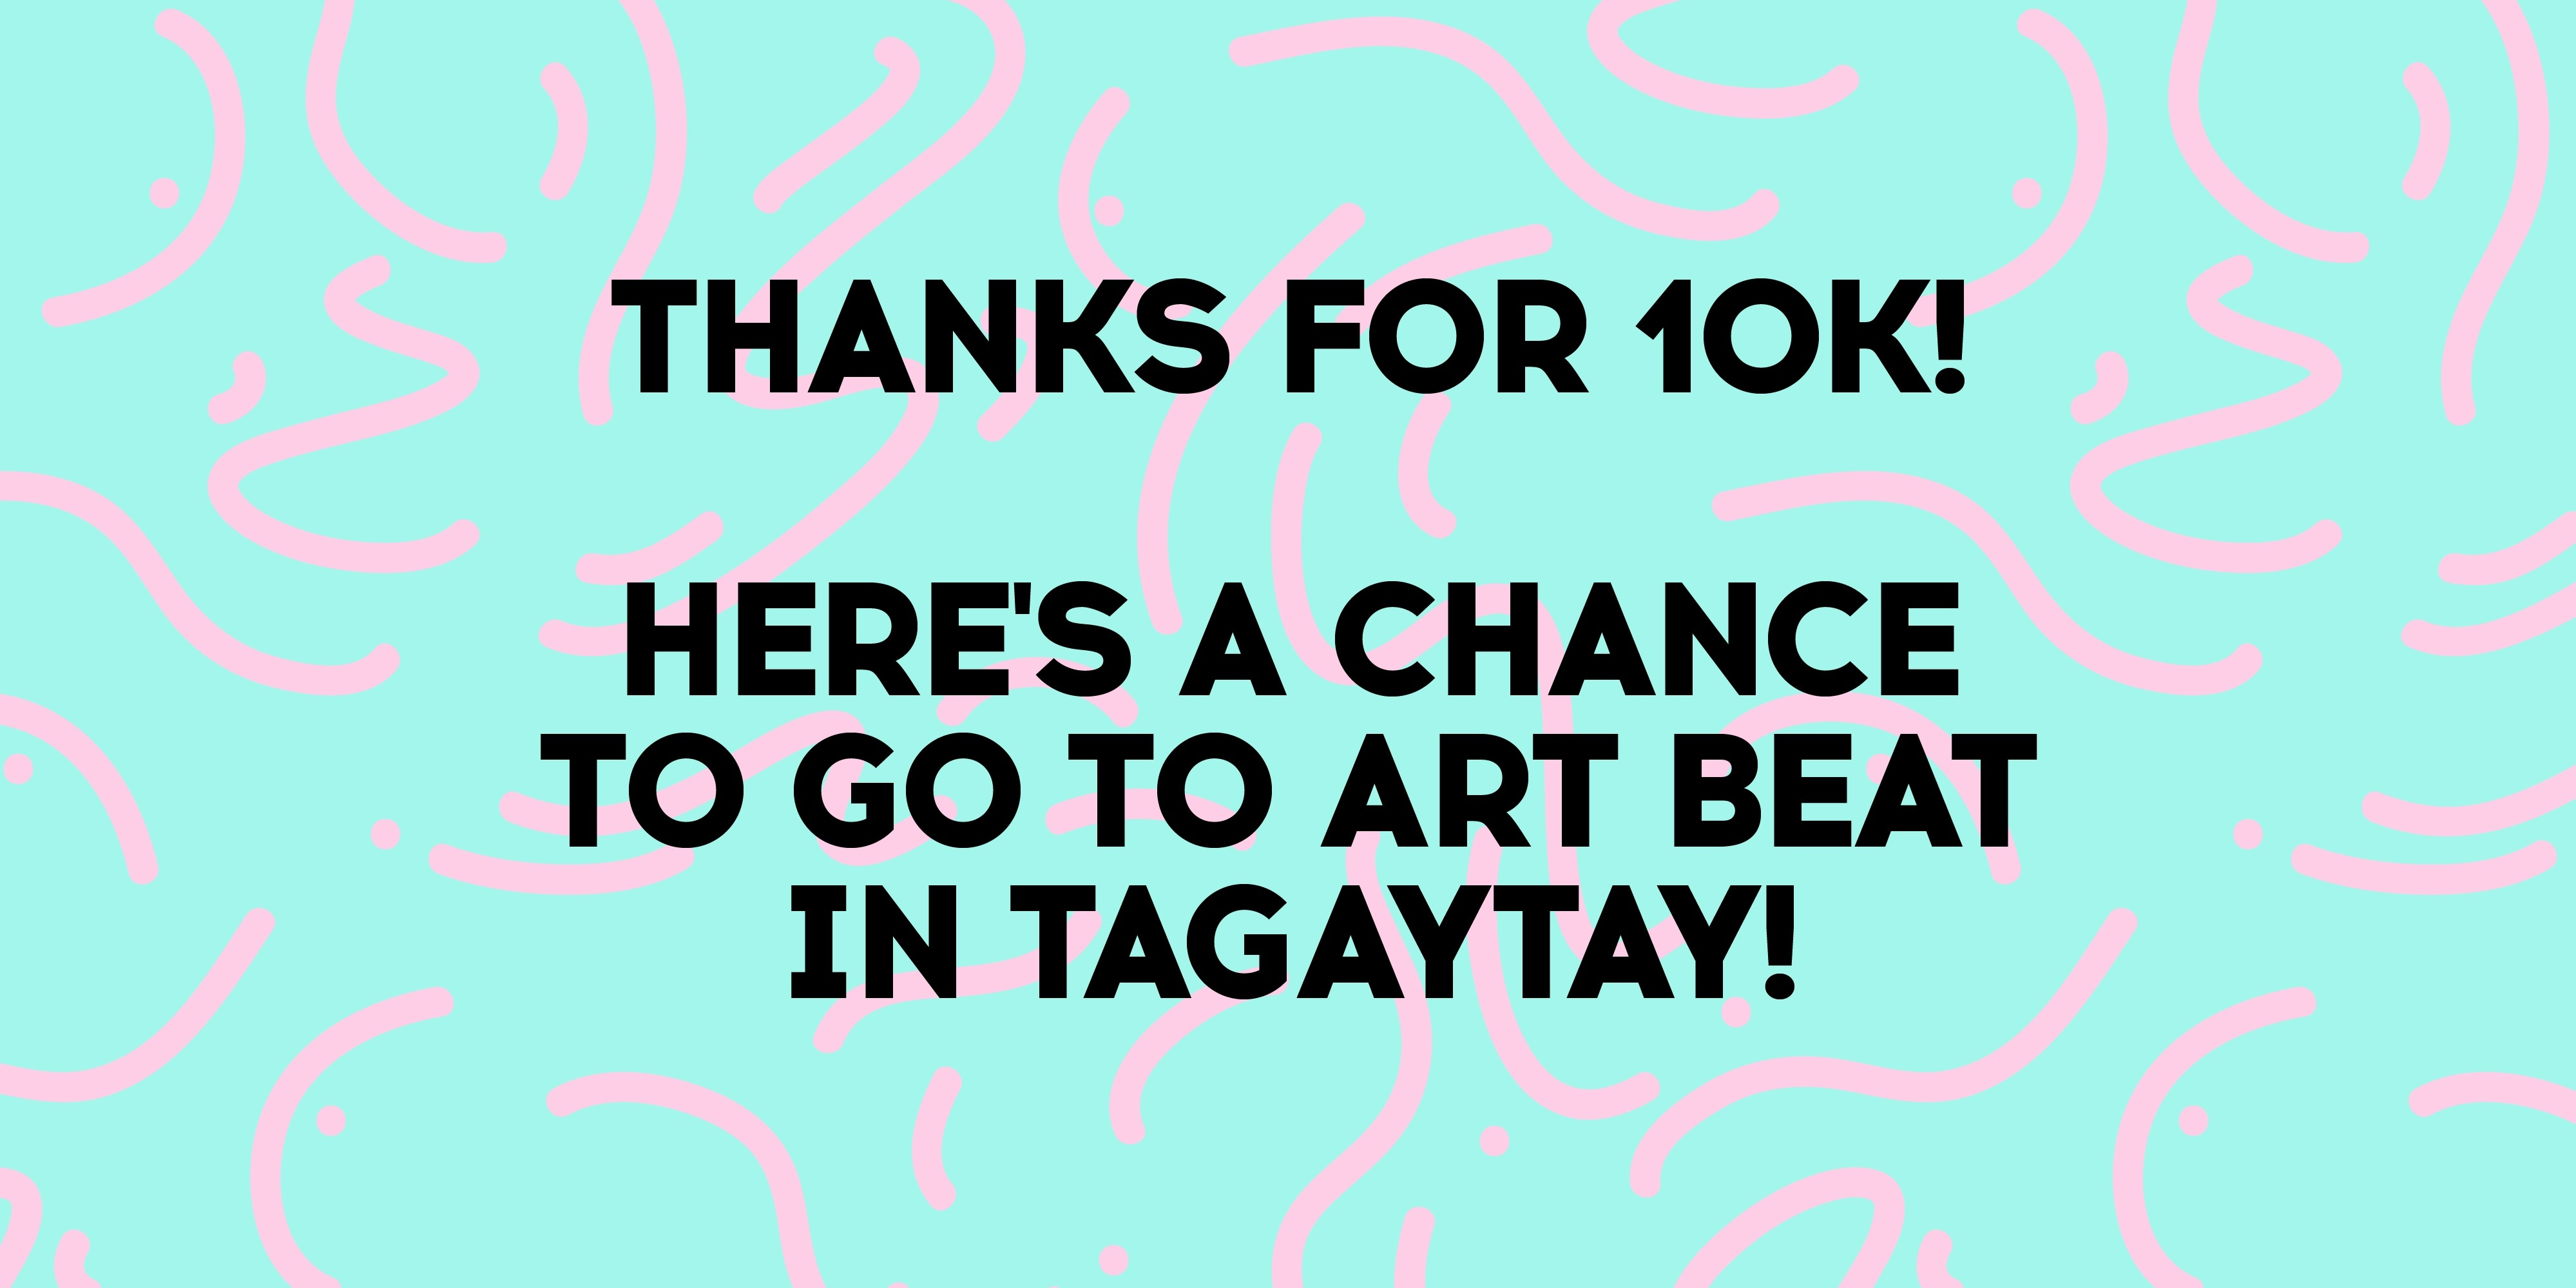 CONTEST: Thanks for 10K! Here's a chance to win tickets to Tagaytay Art Beat 2!